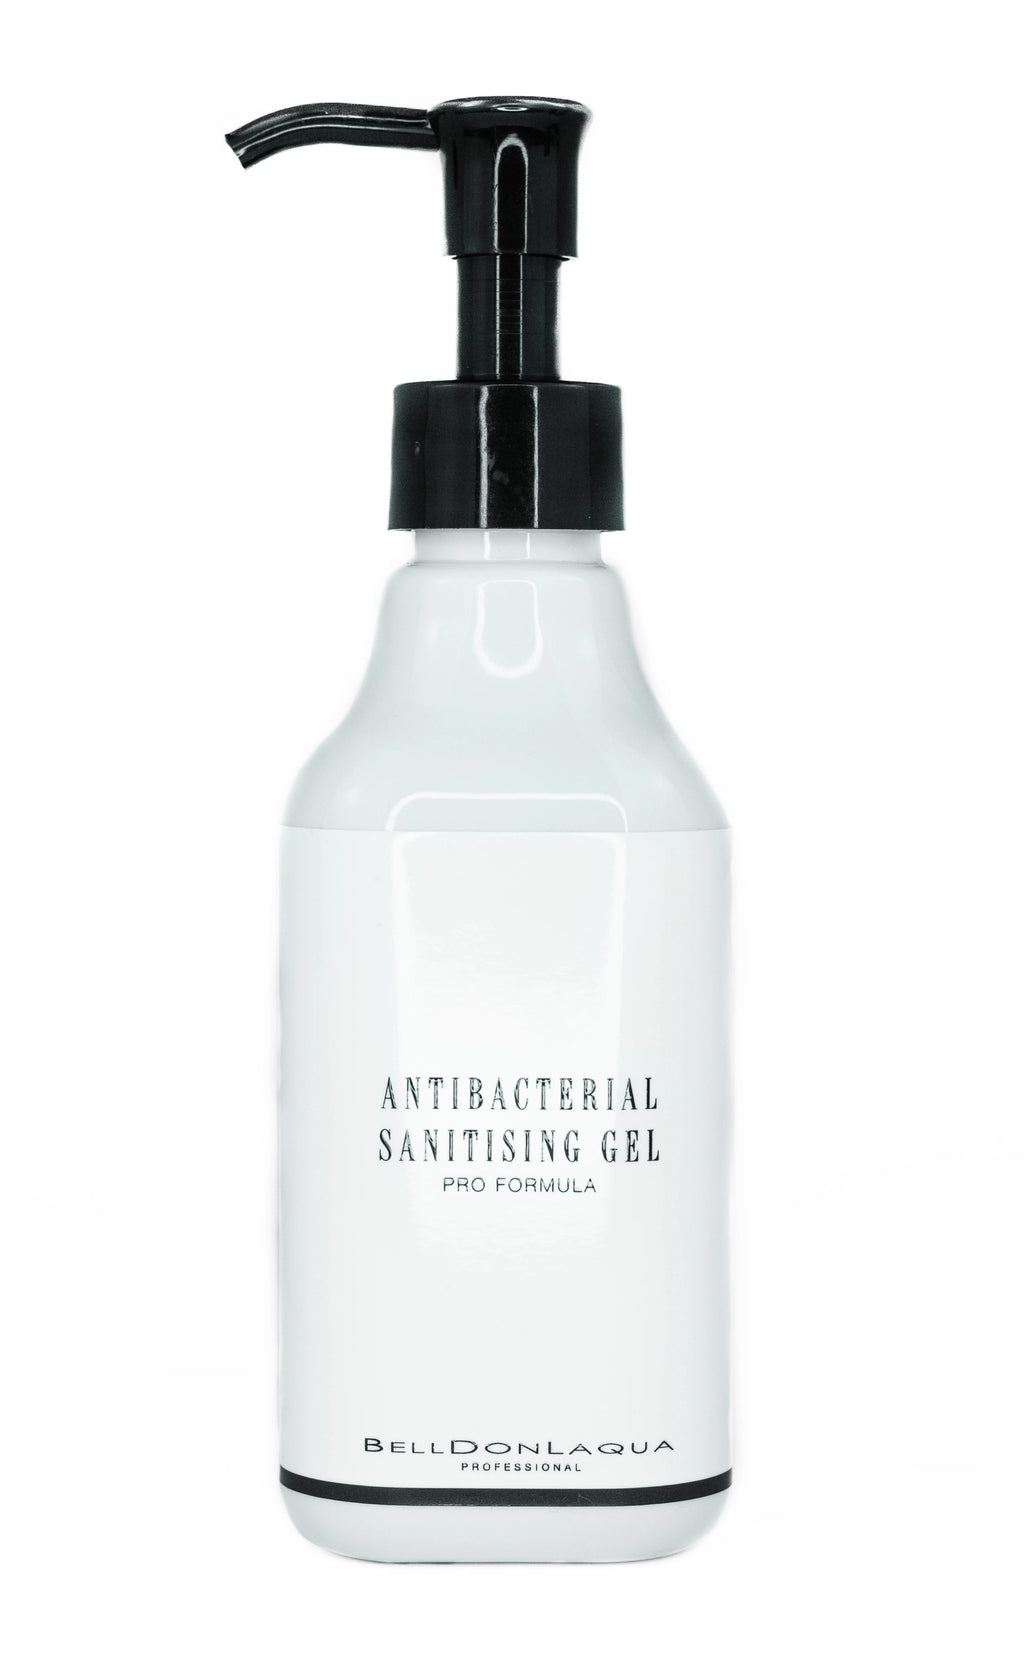 Antibacterial Sanitising Gel - 200ml